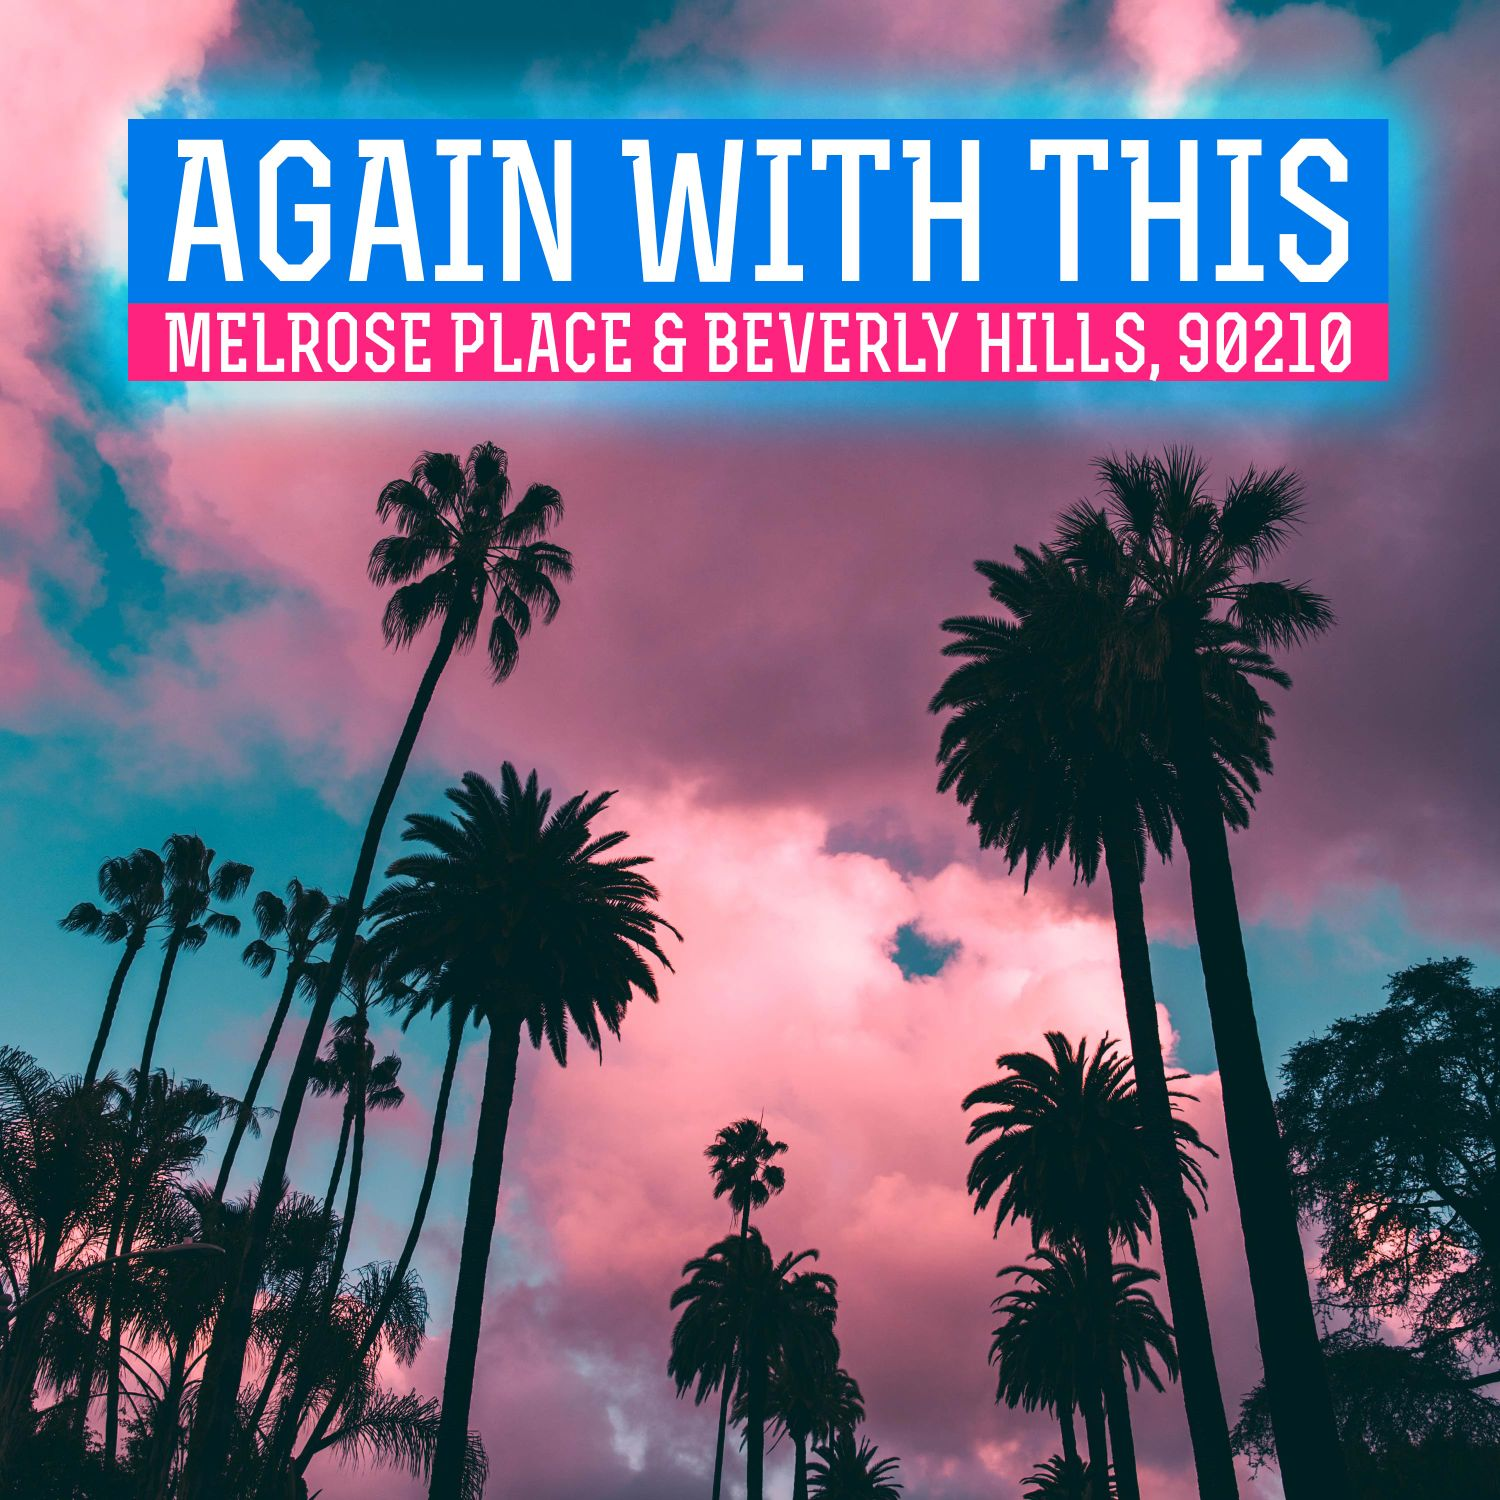 Again With This: Beverly Hills, 90210 & Melrose Place | Podbay